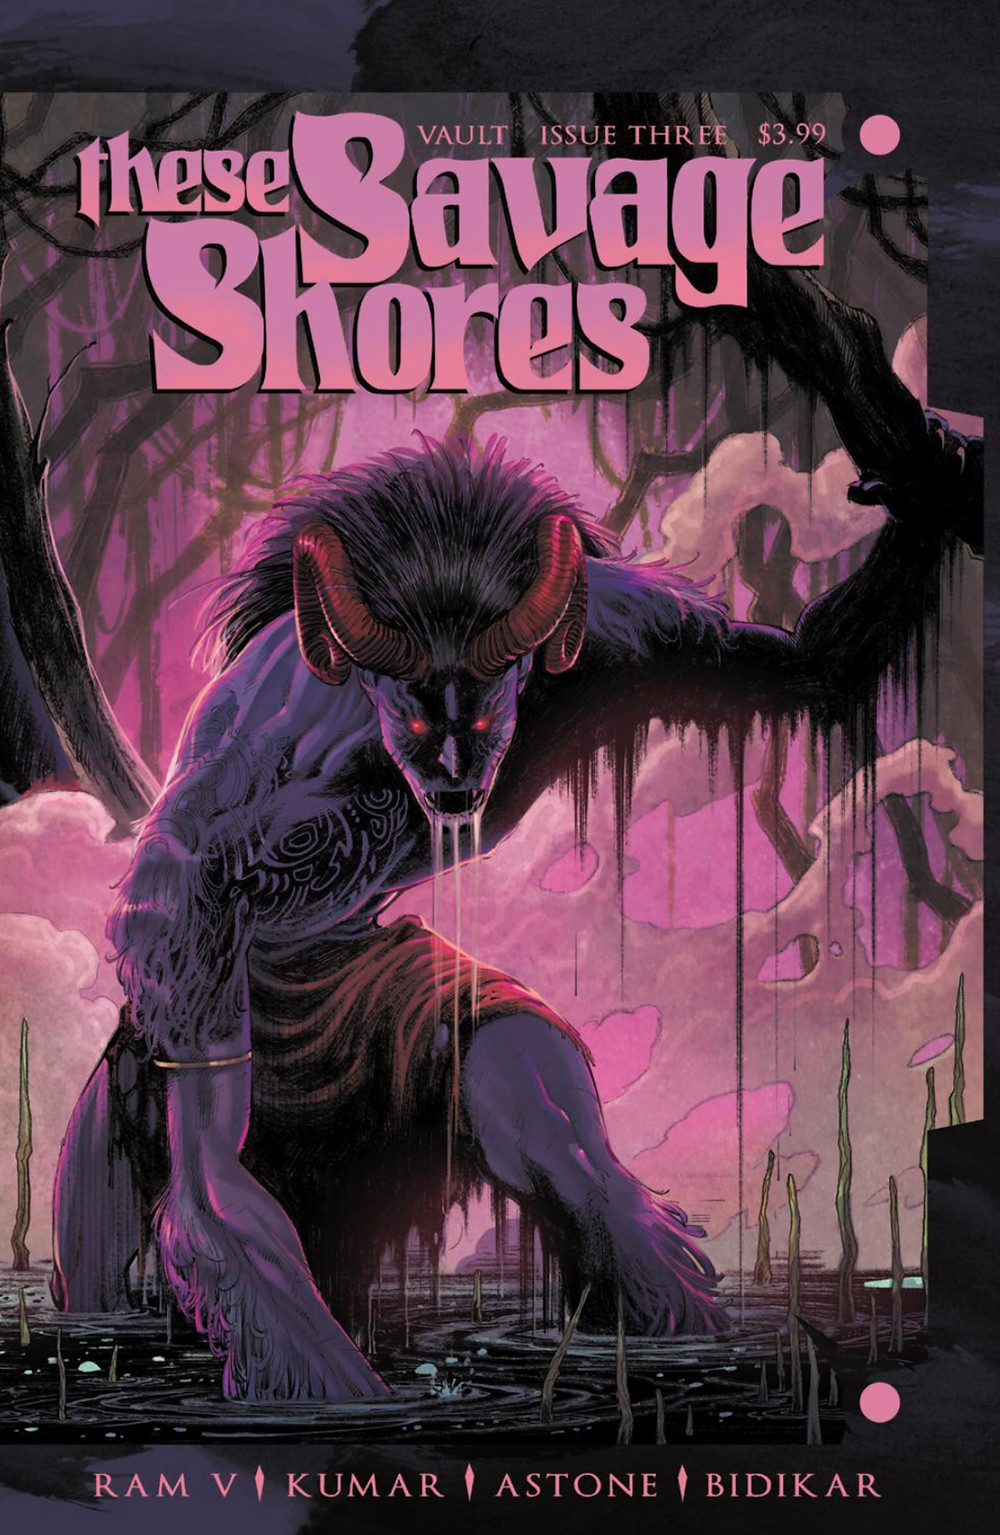 These Savage Shores, Issue #3, cover, Vault Comics, Ram V/Kumar